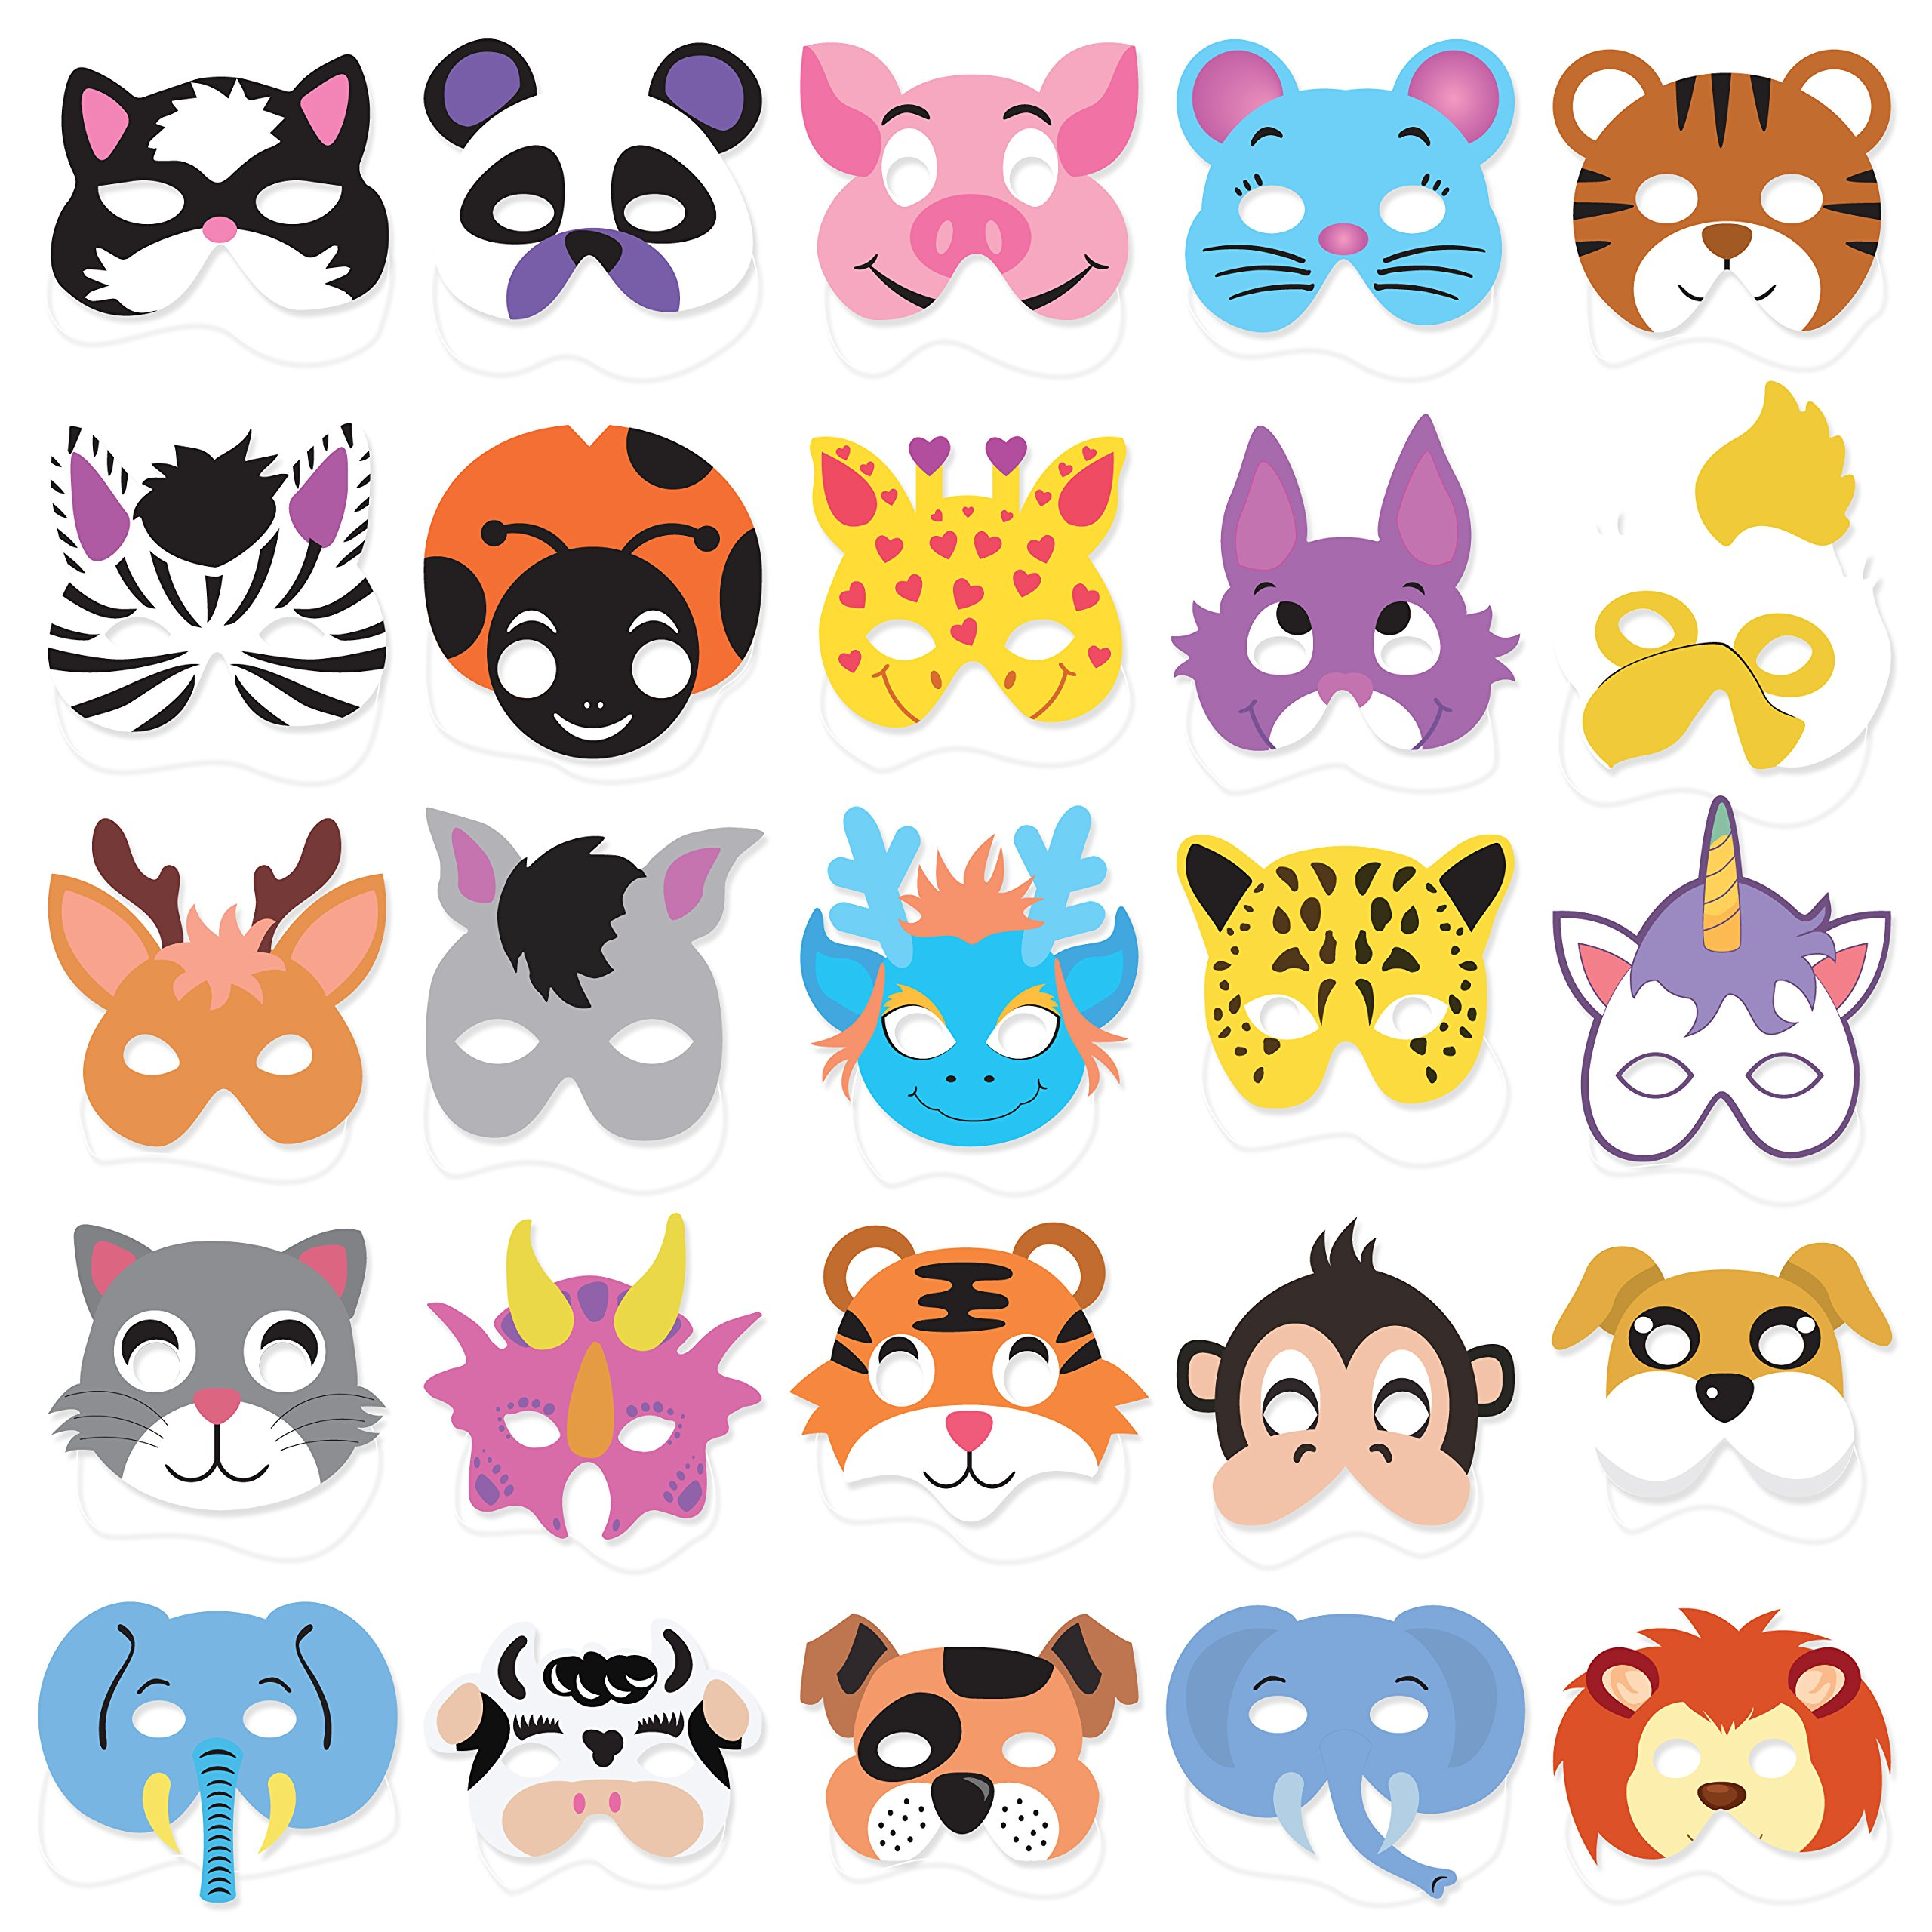 25PCs Animal Masks for Kids Birthday Jungle Safari Zoo theme Party Supplies Dress - up Party Kit Favors